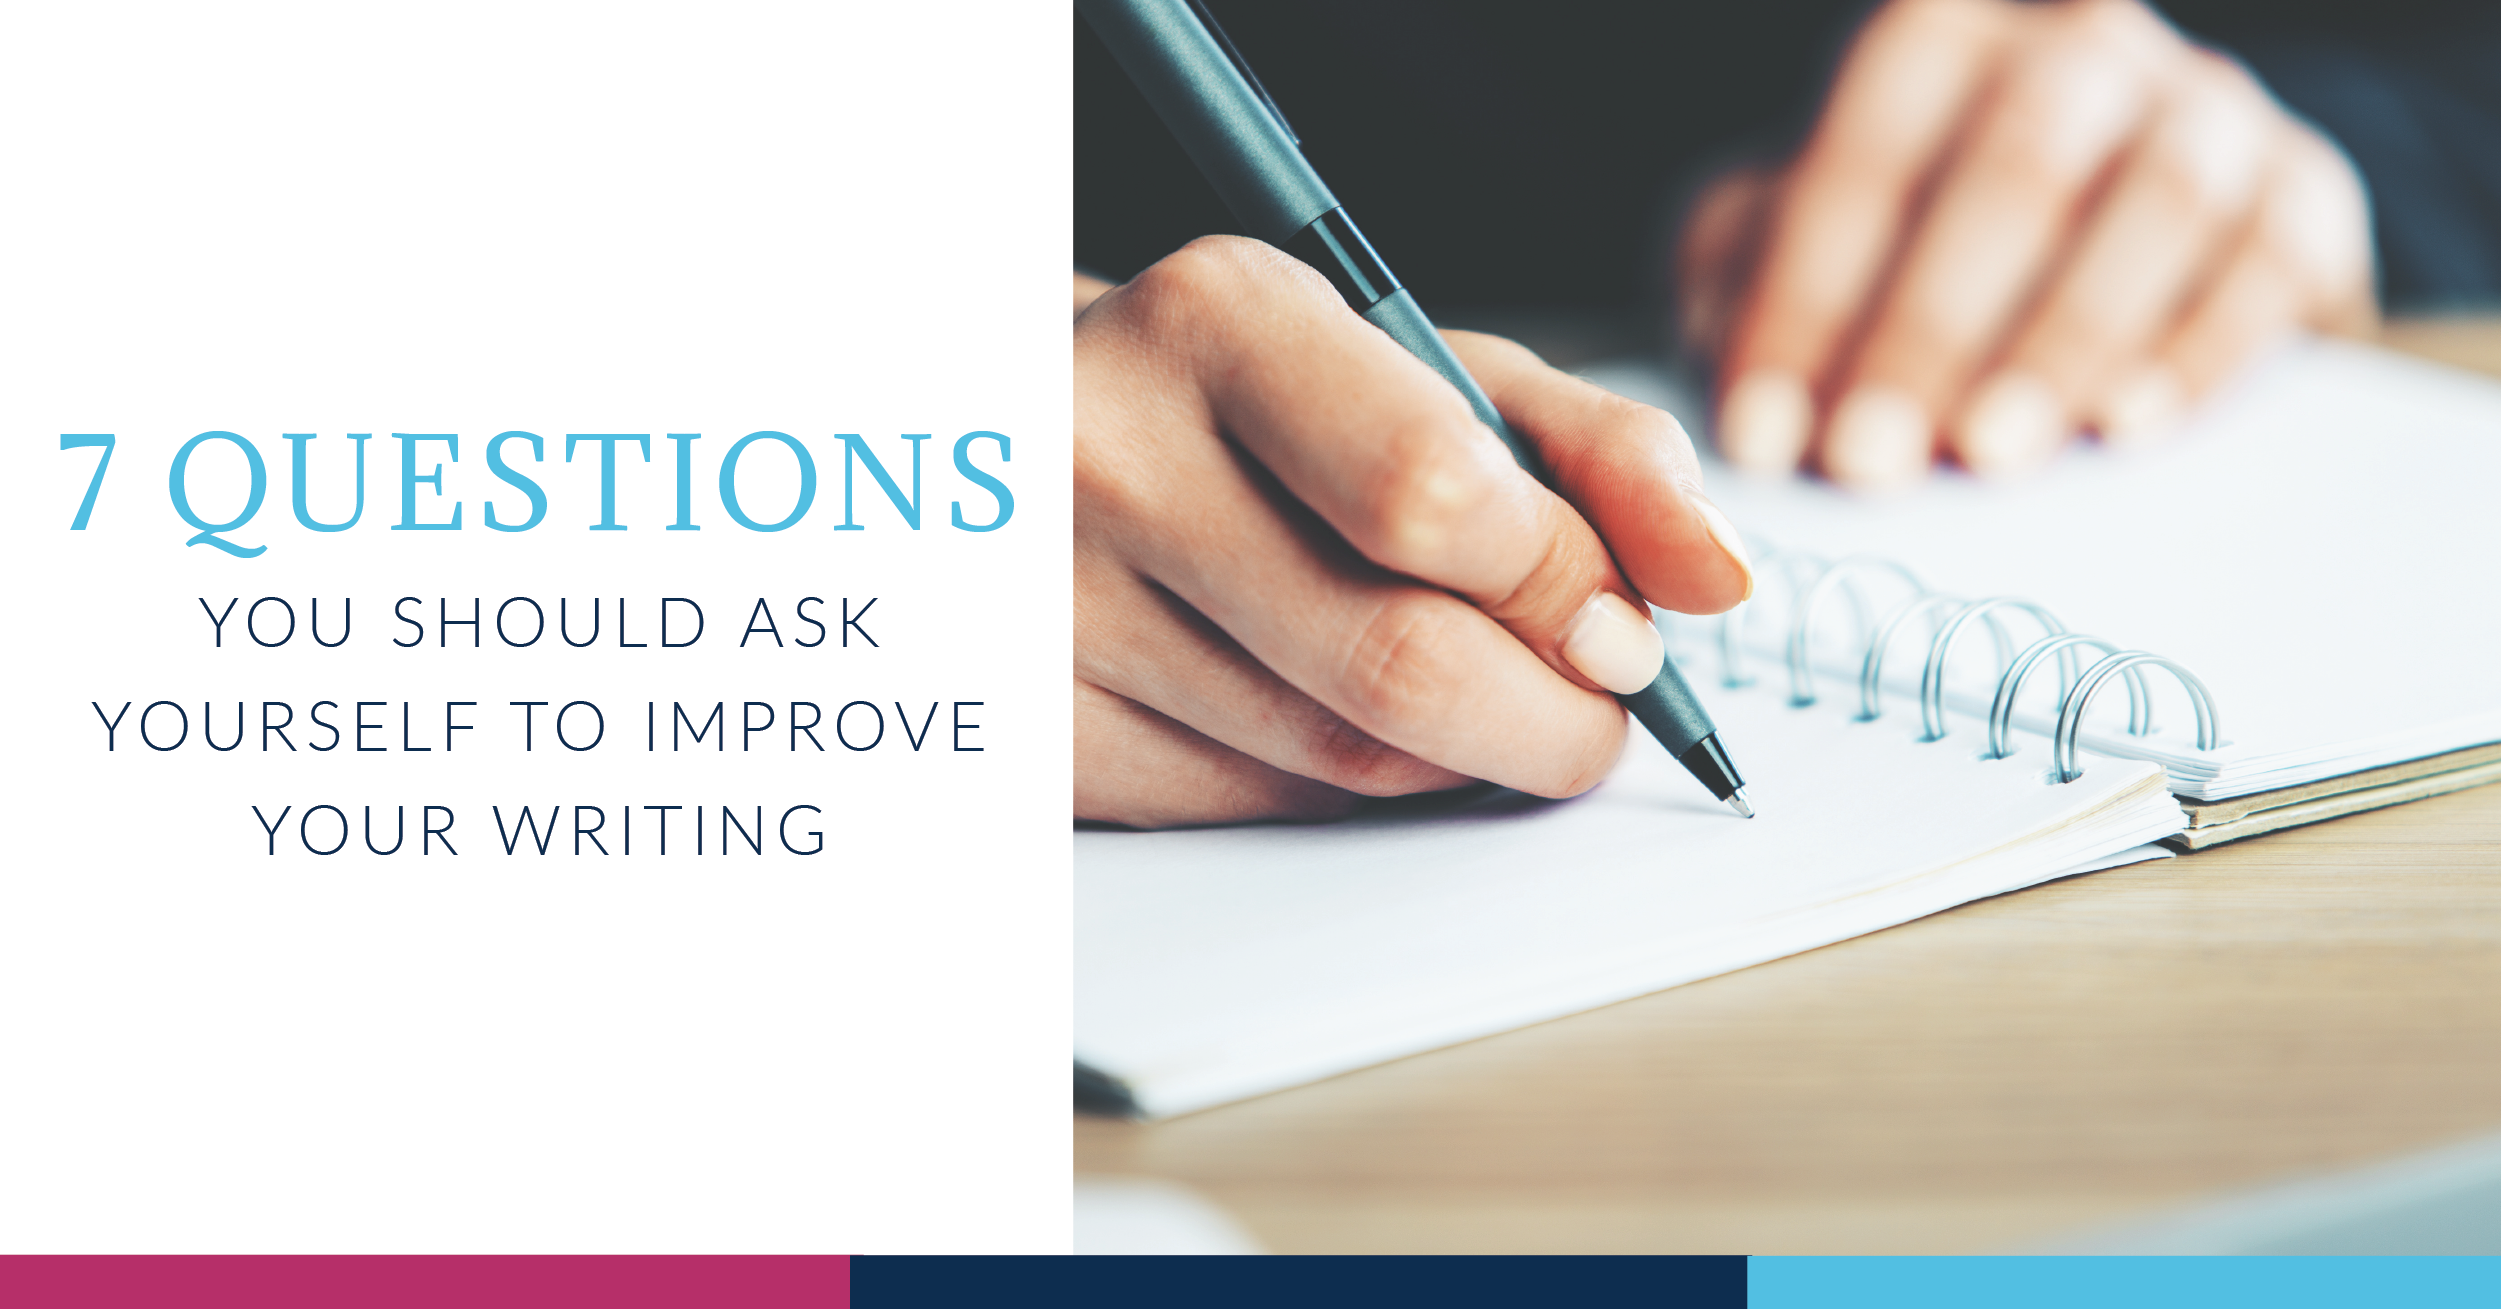 7 Questions You Should Ask Yourself to Improve Your Writing